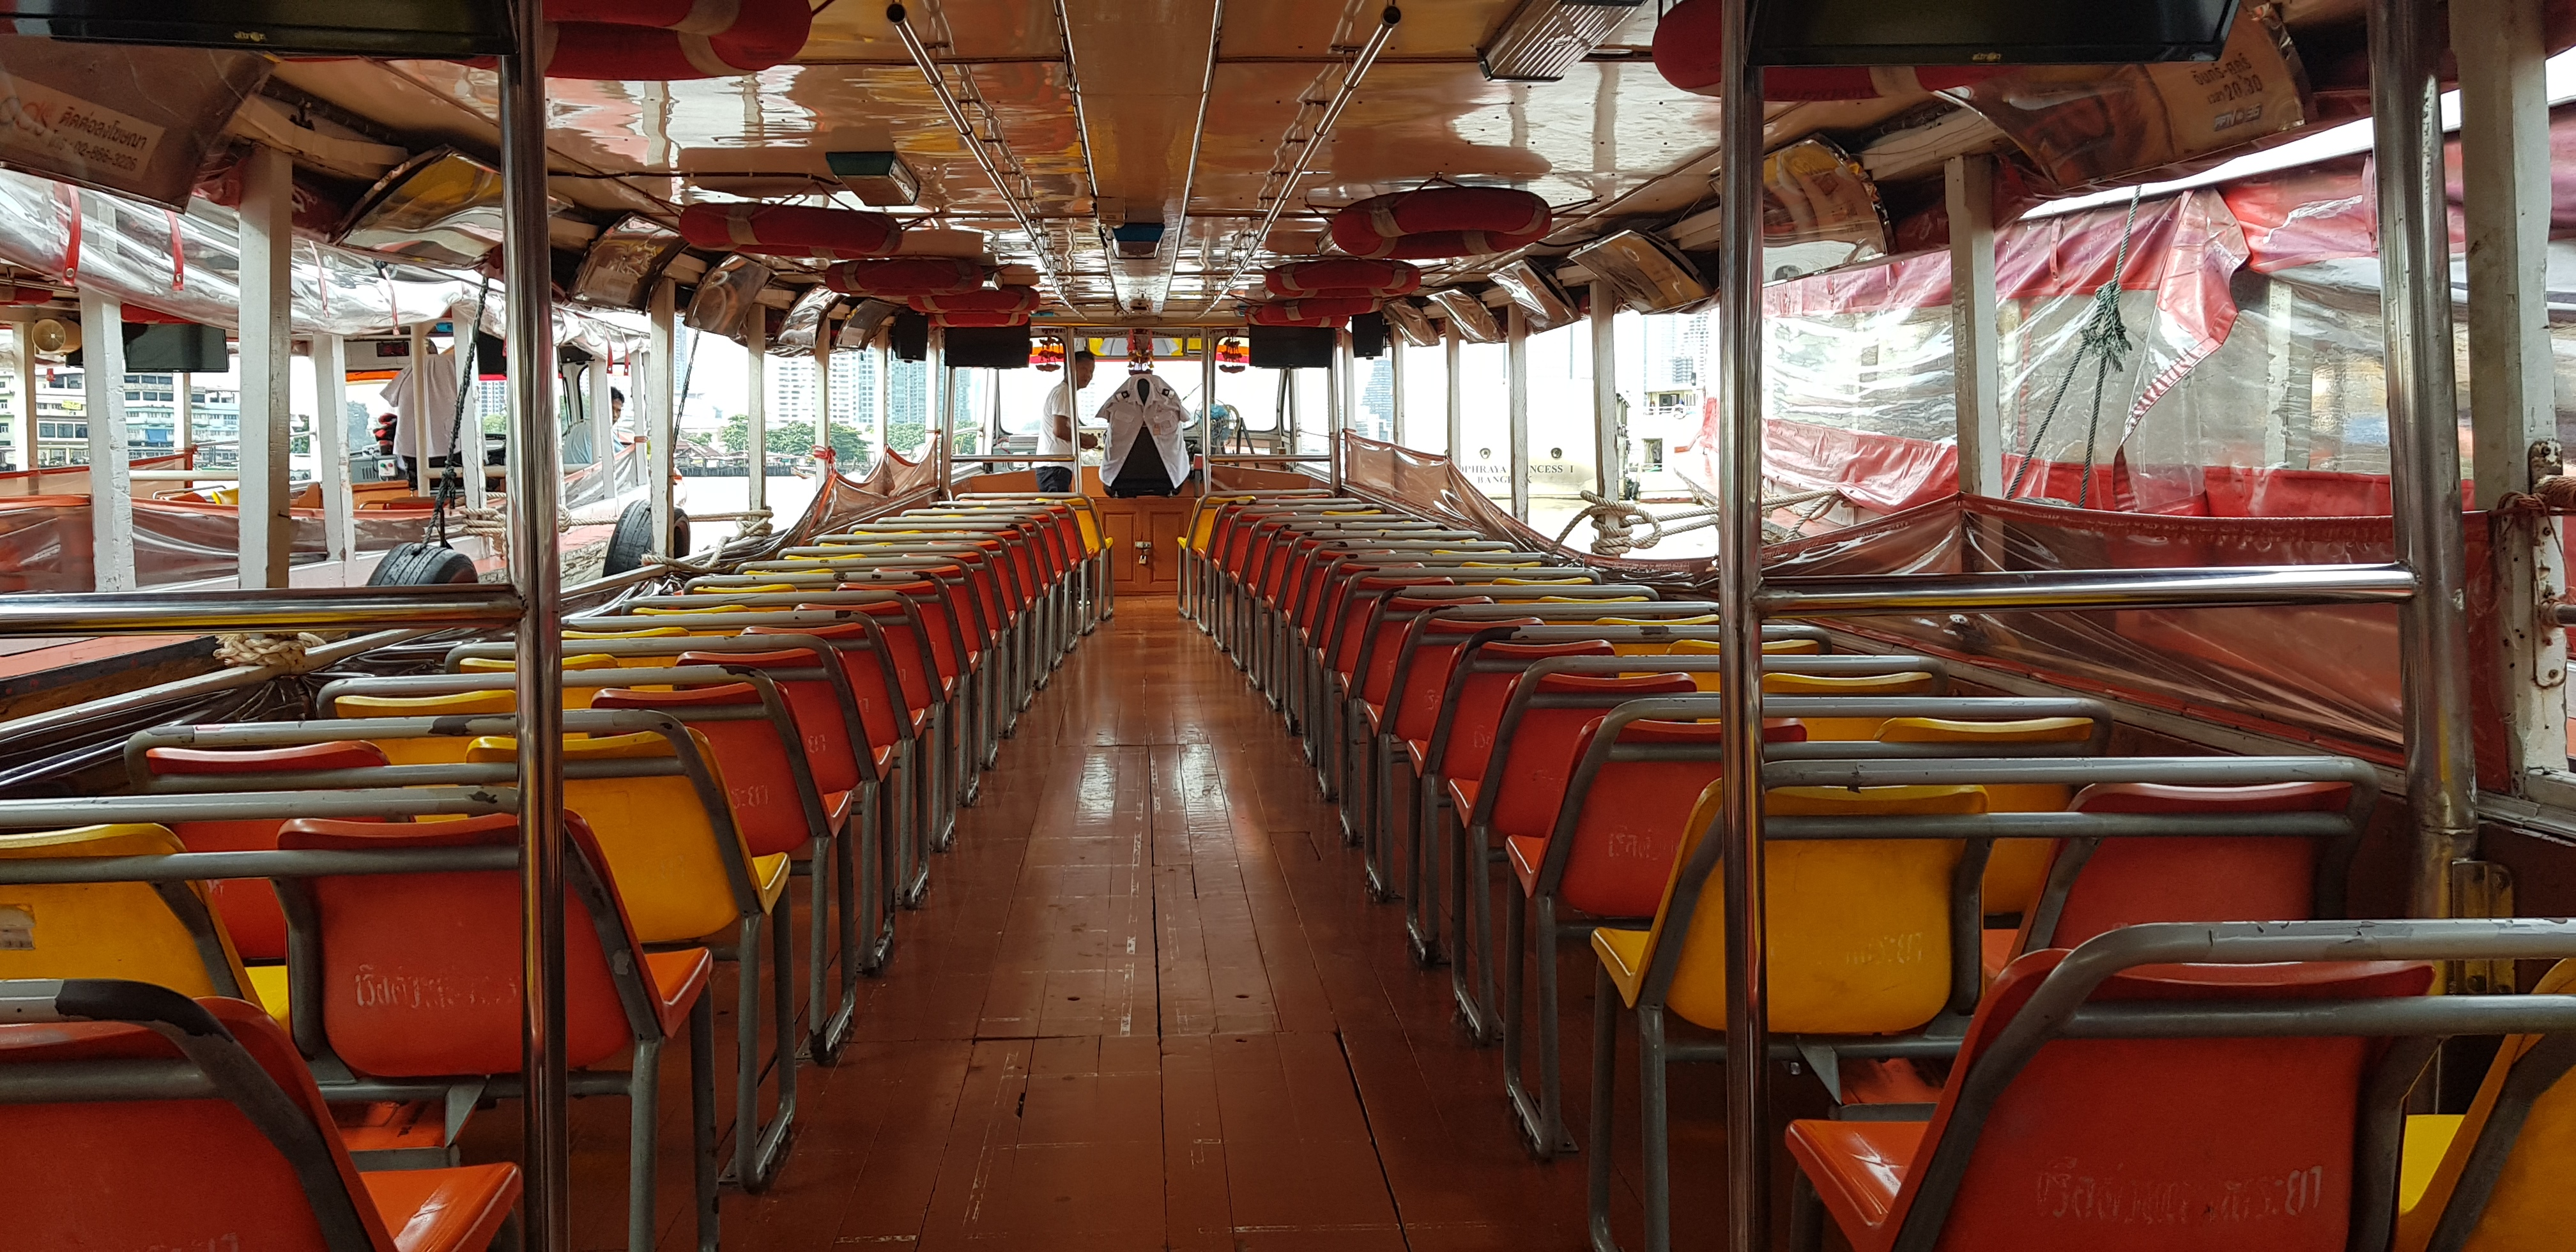 rows of chairs on the inside of the Chao Phraya Express boat